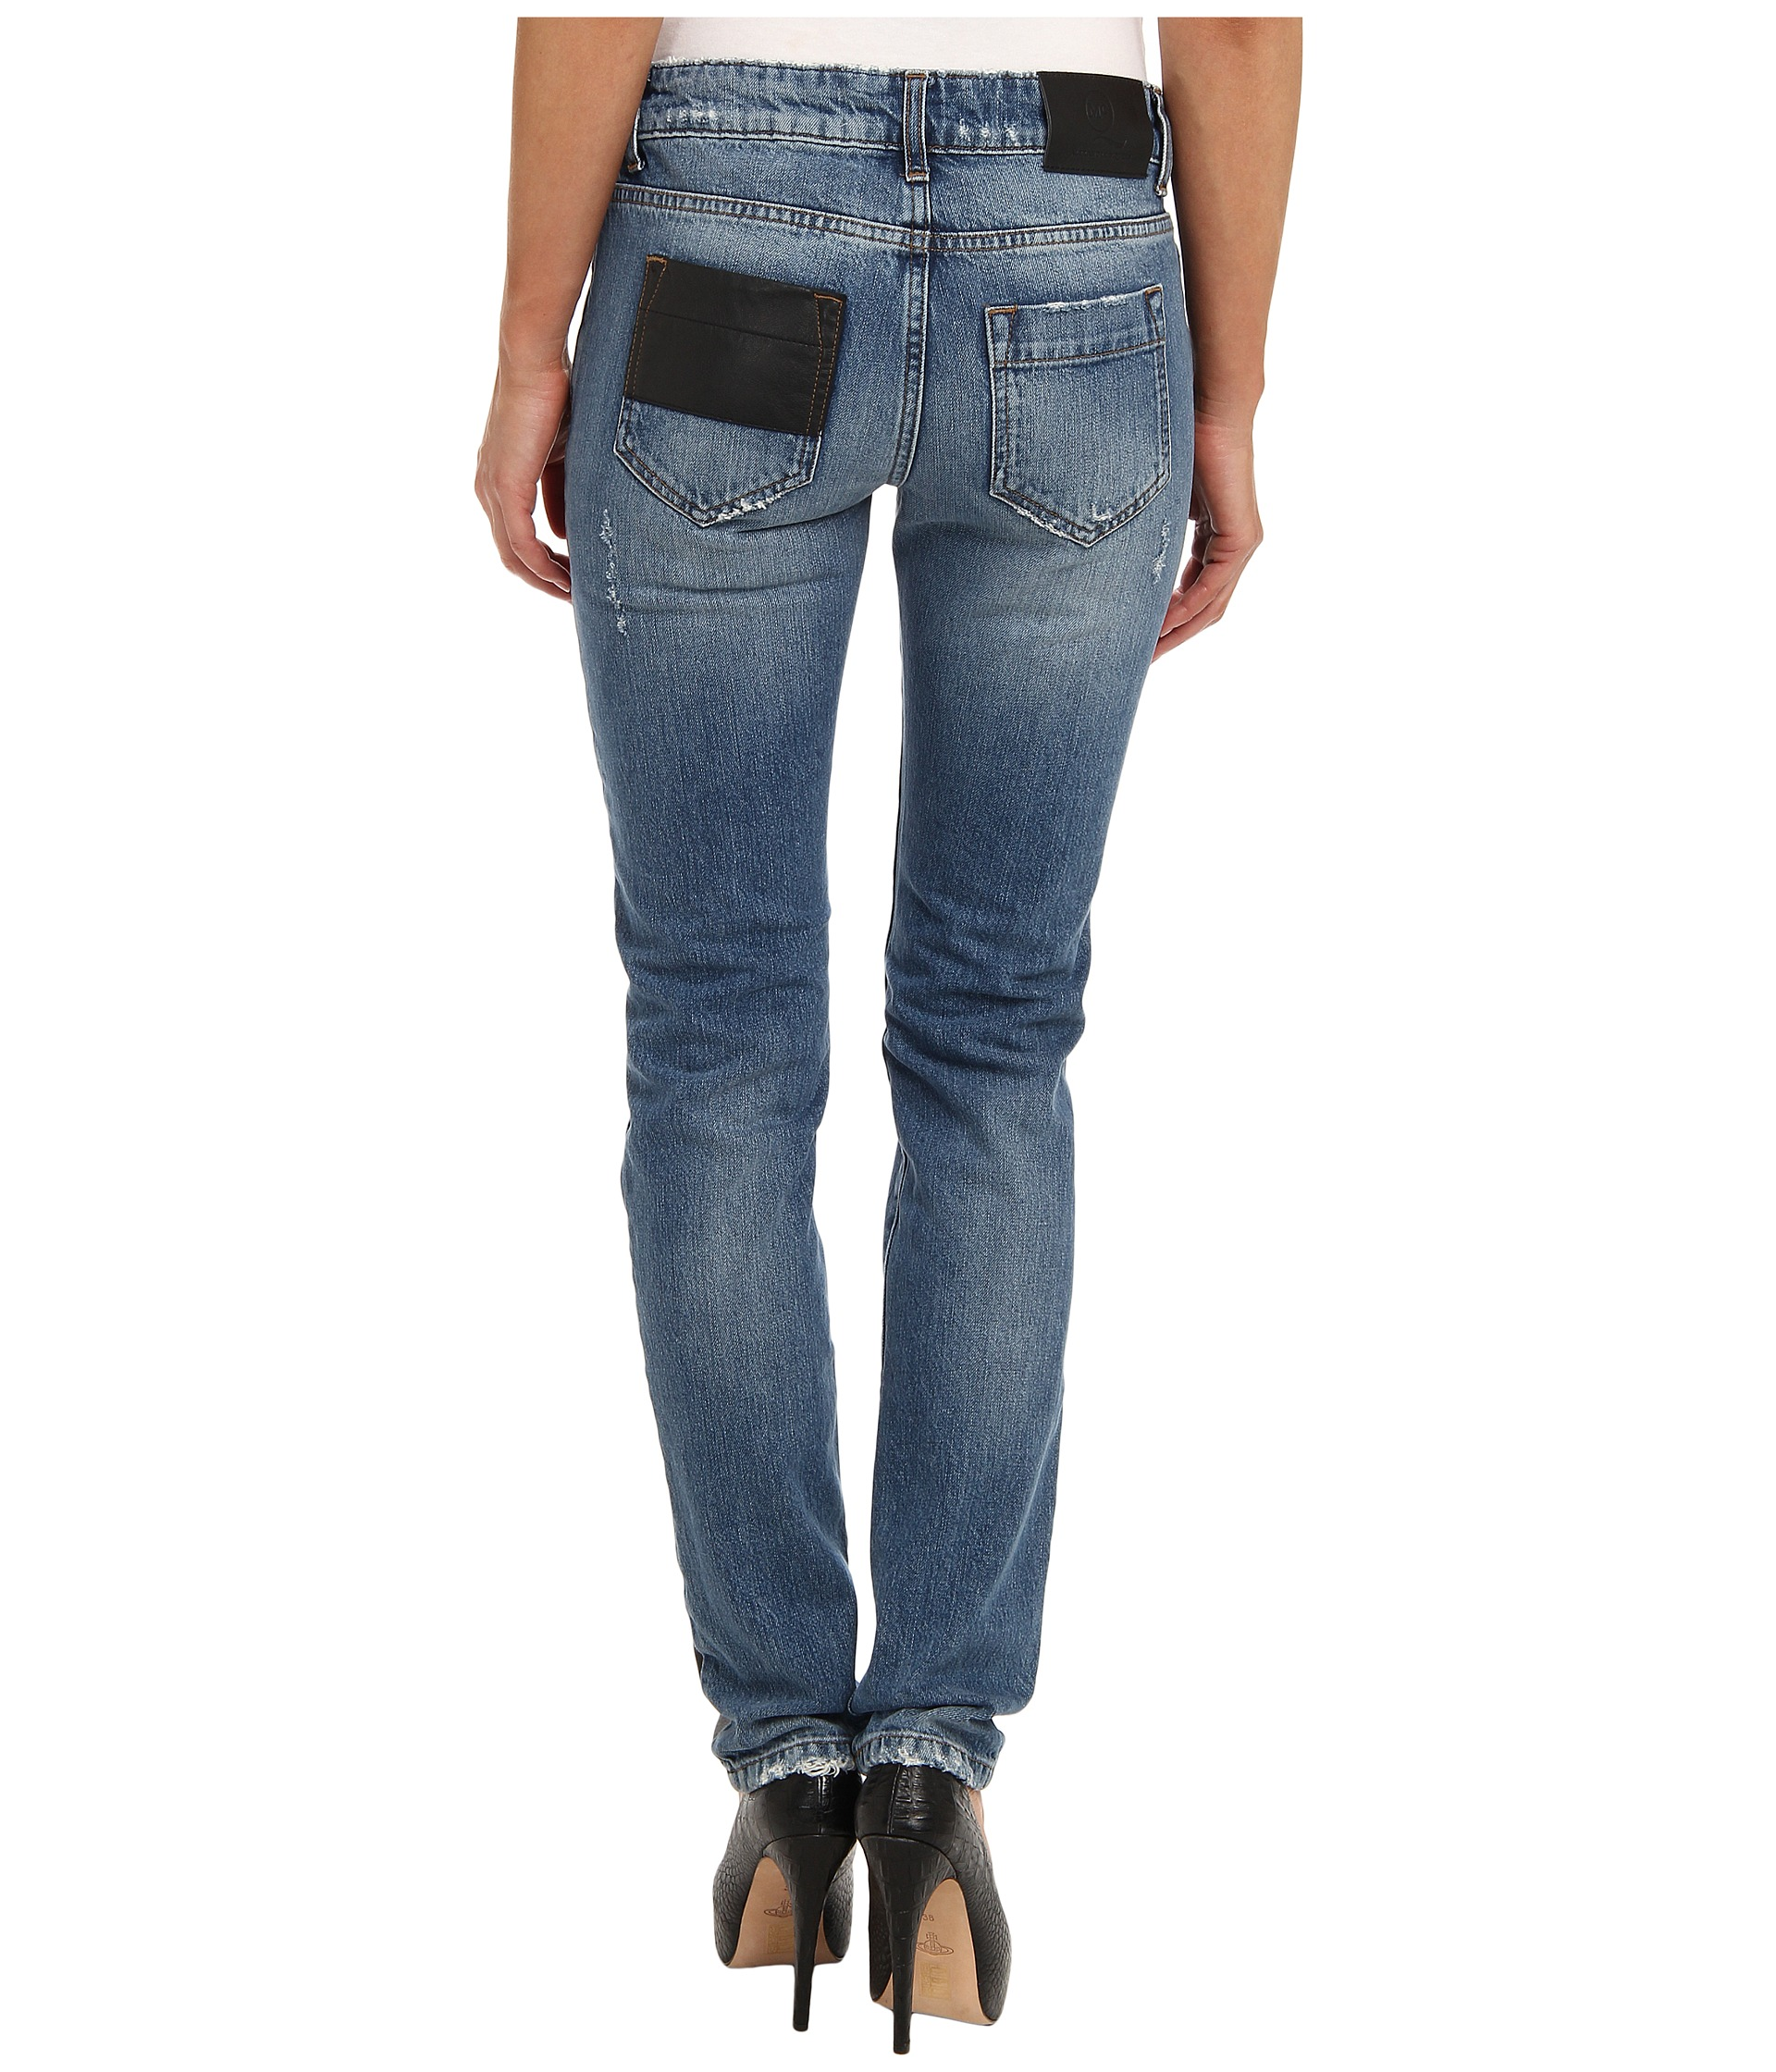 mcq hybrid low waist skinny jeans washed indigo shipped free at zappos. Black Bedroom Furniture Sets. Home Design Ideas